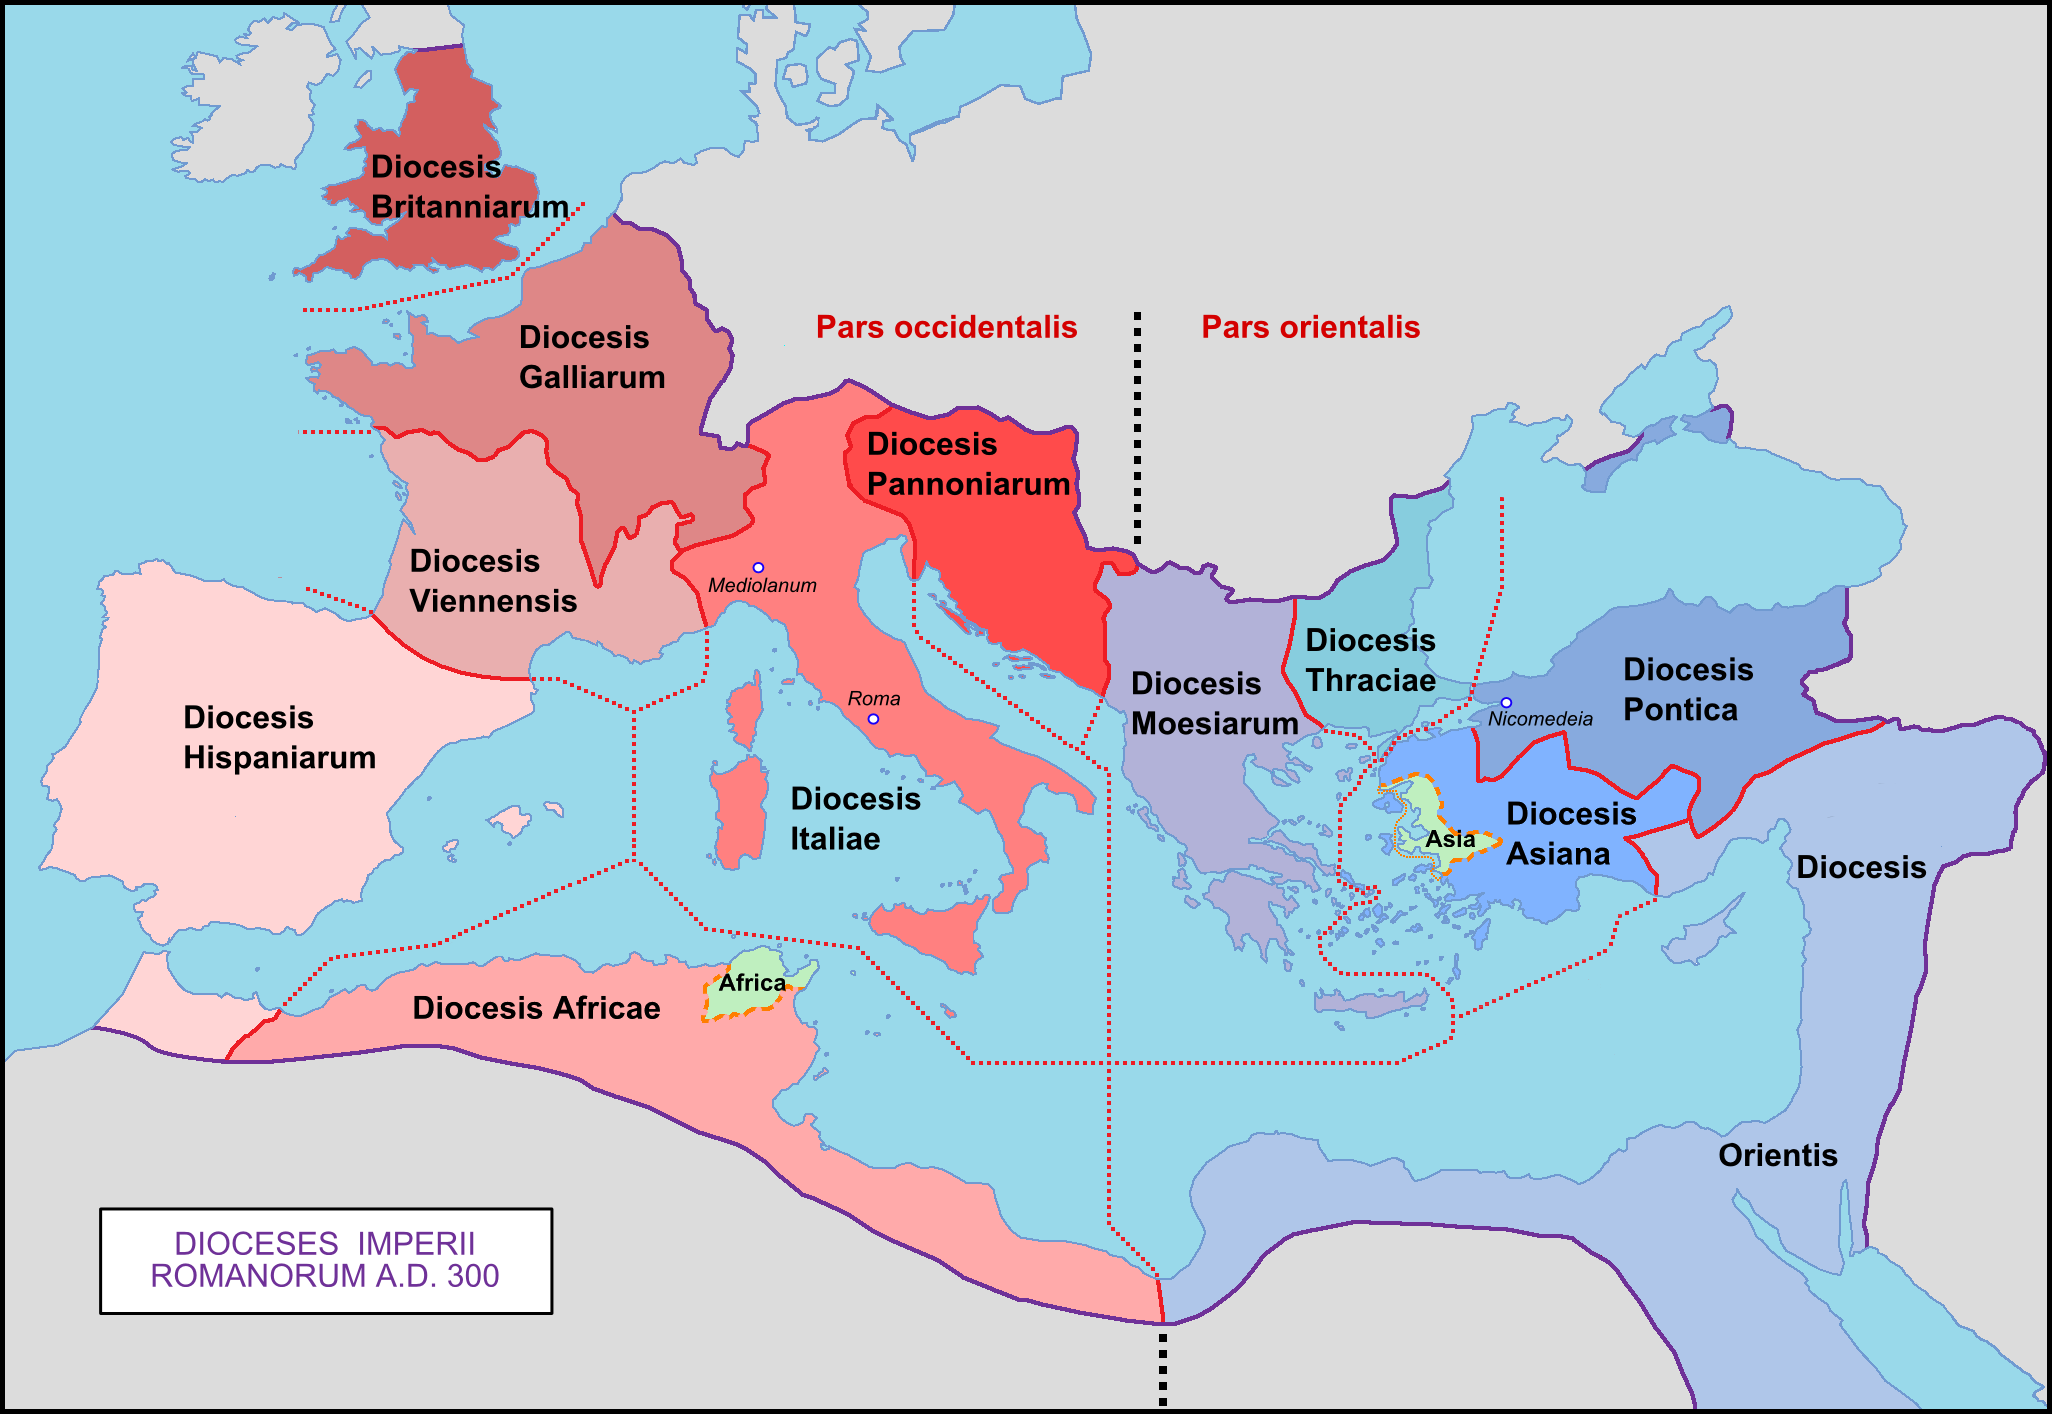 Roman_Empire_with_dioceses_in_300_AD.png